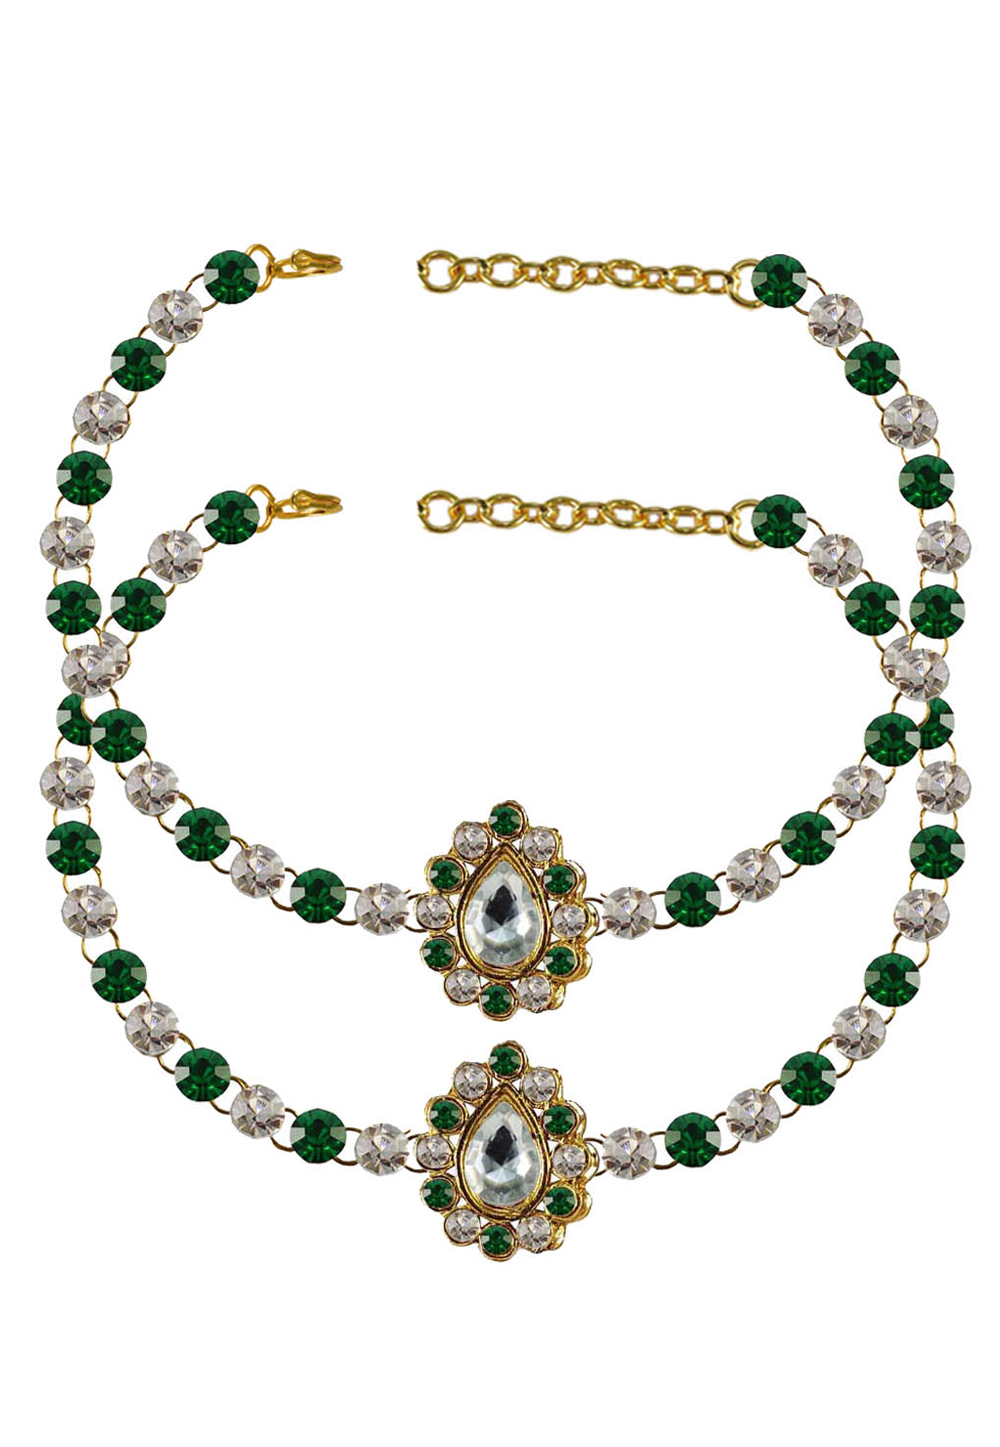 Green Brass Gold Plated Anklets 171349